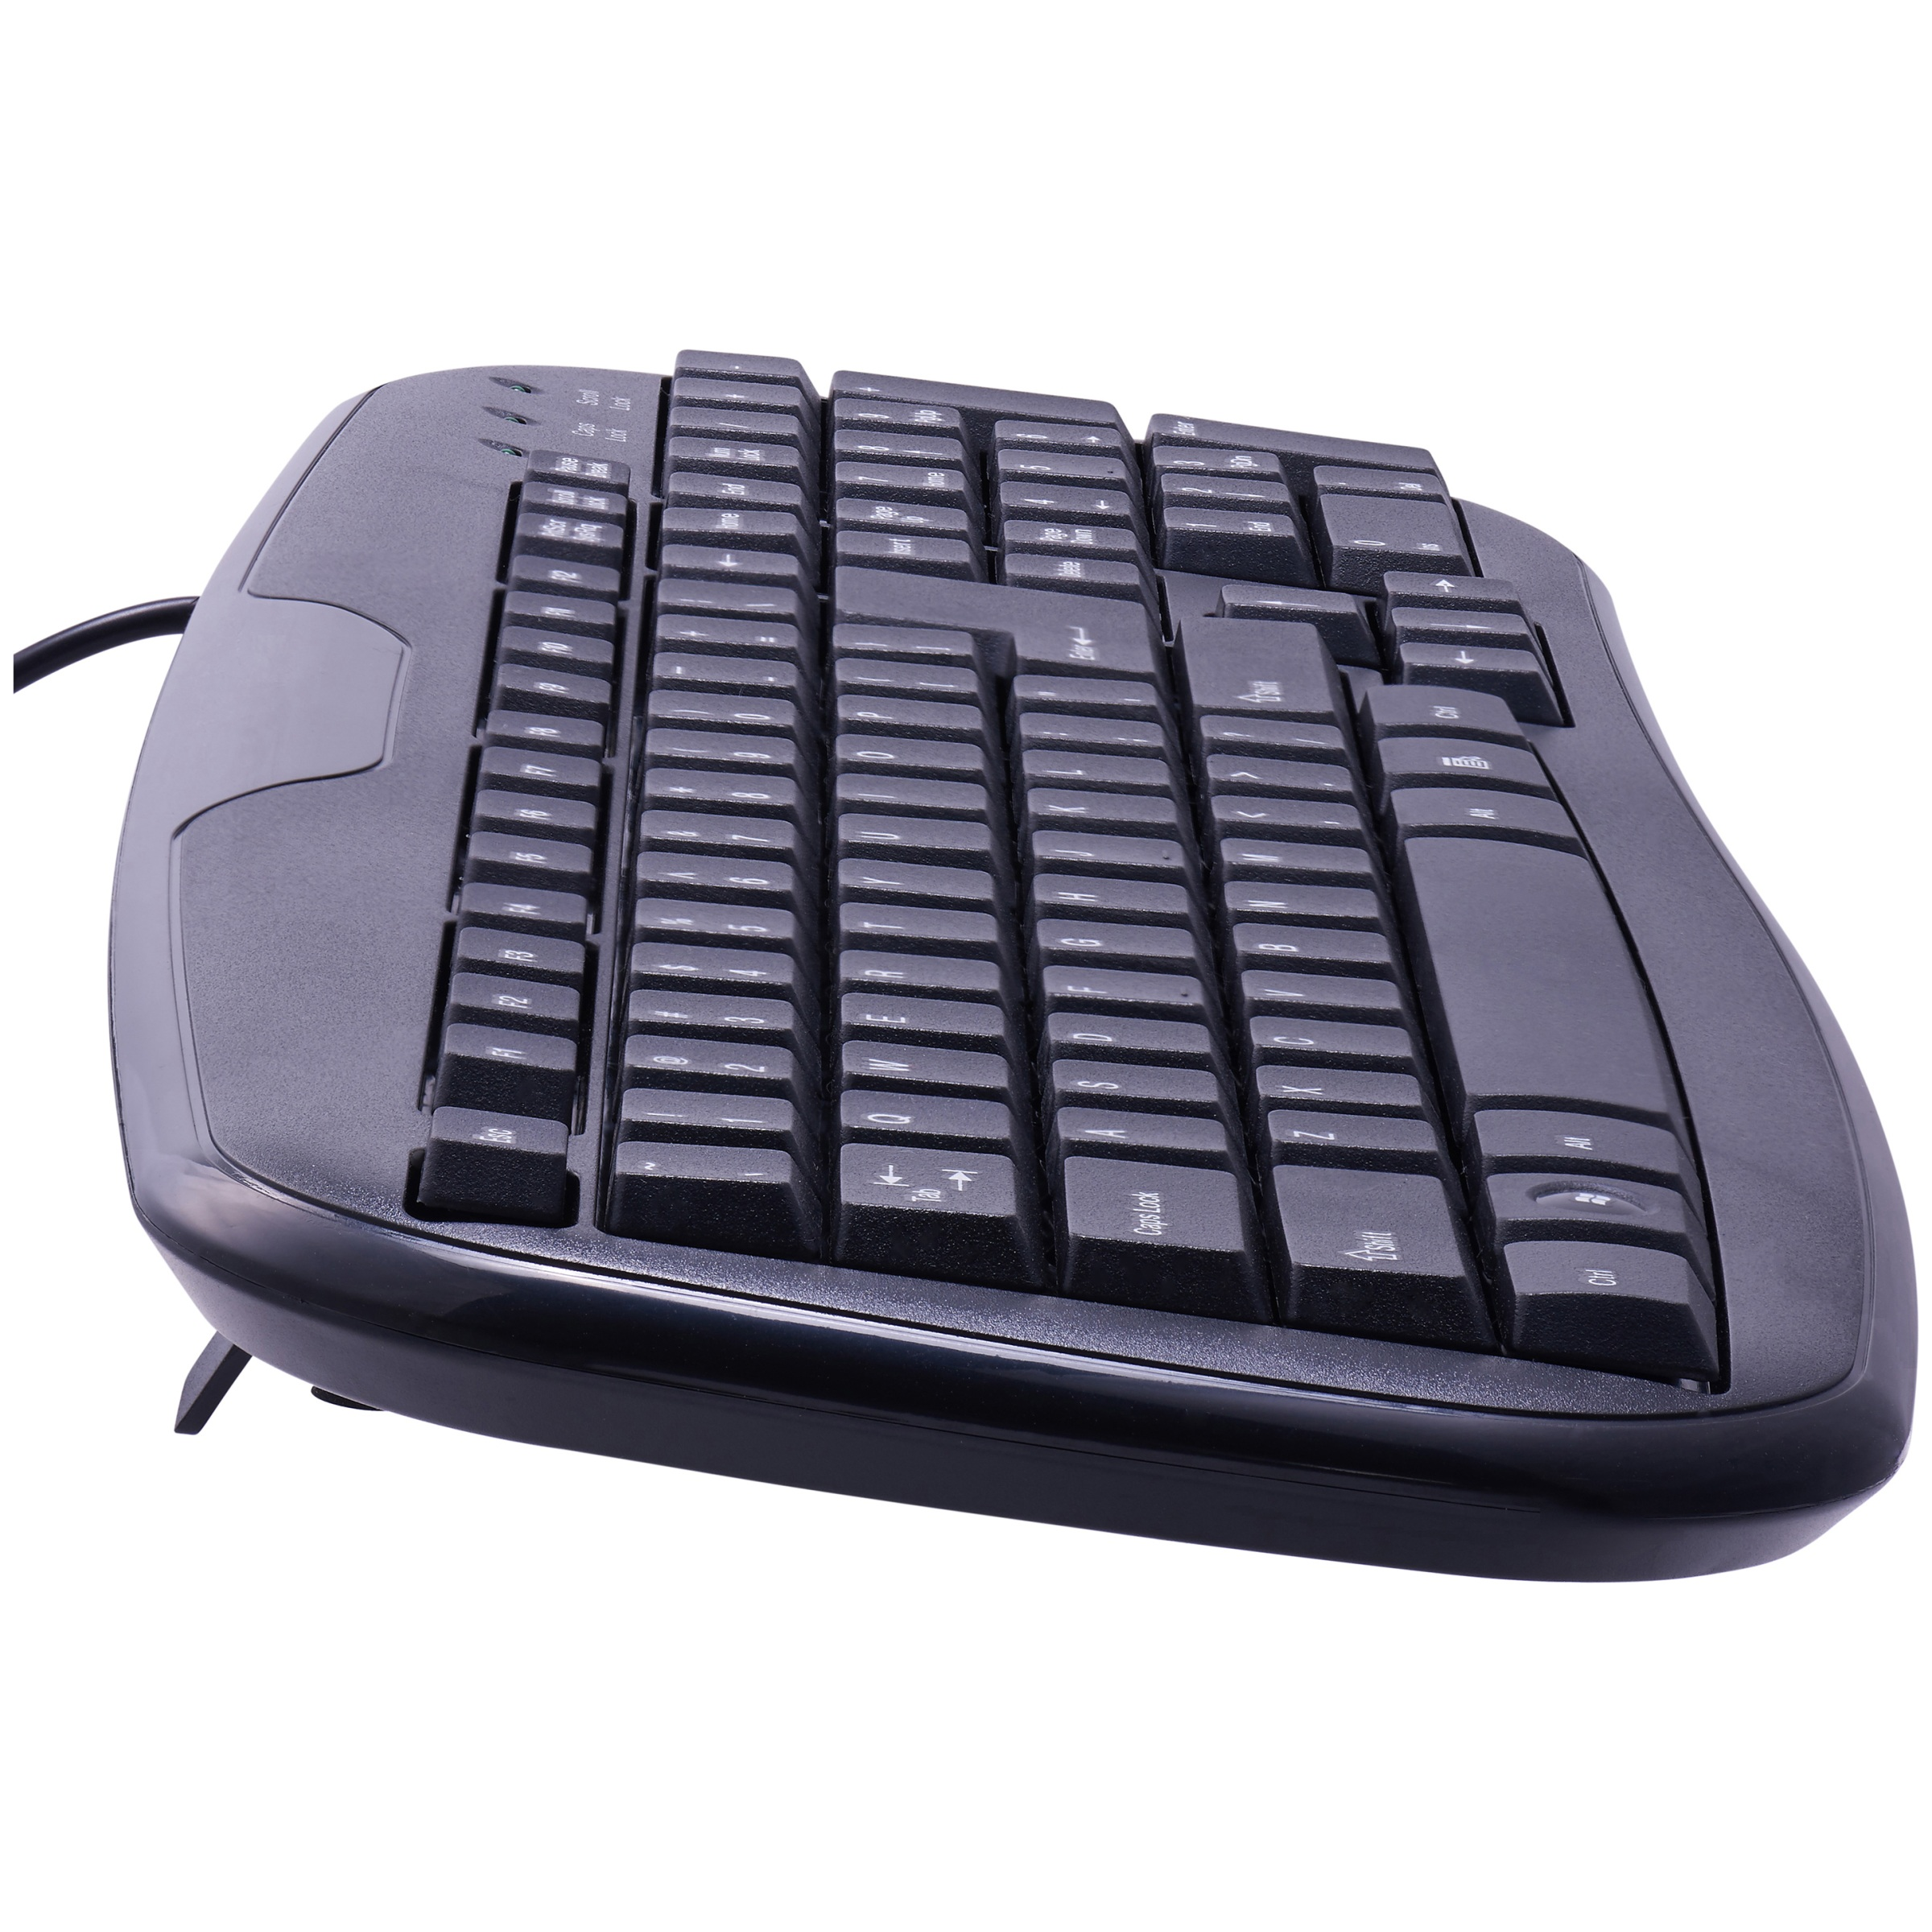 Onn Usb Connected Soft Touch Wired Keyboard Black I8 Mini Wearless Pnp Windows